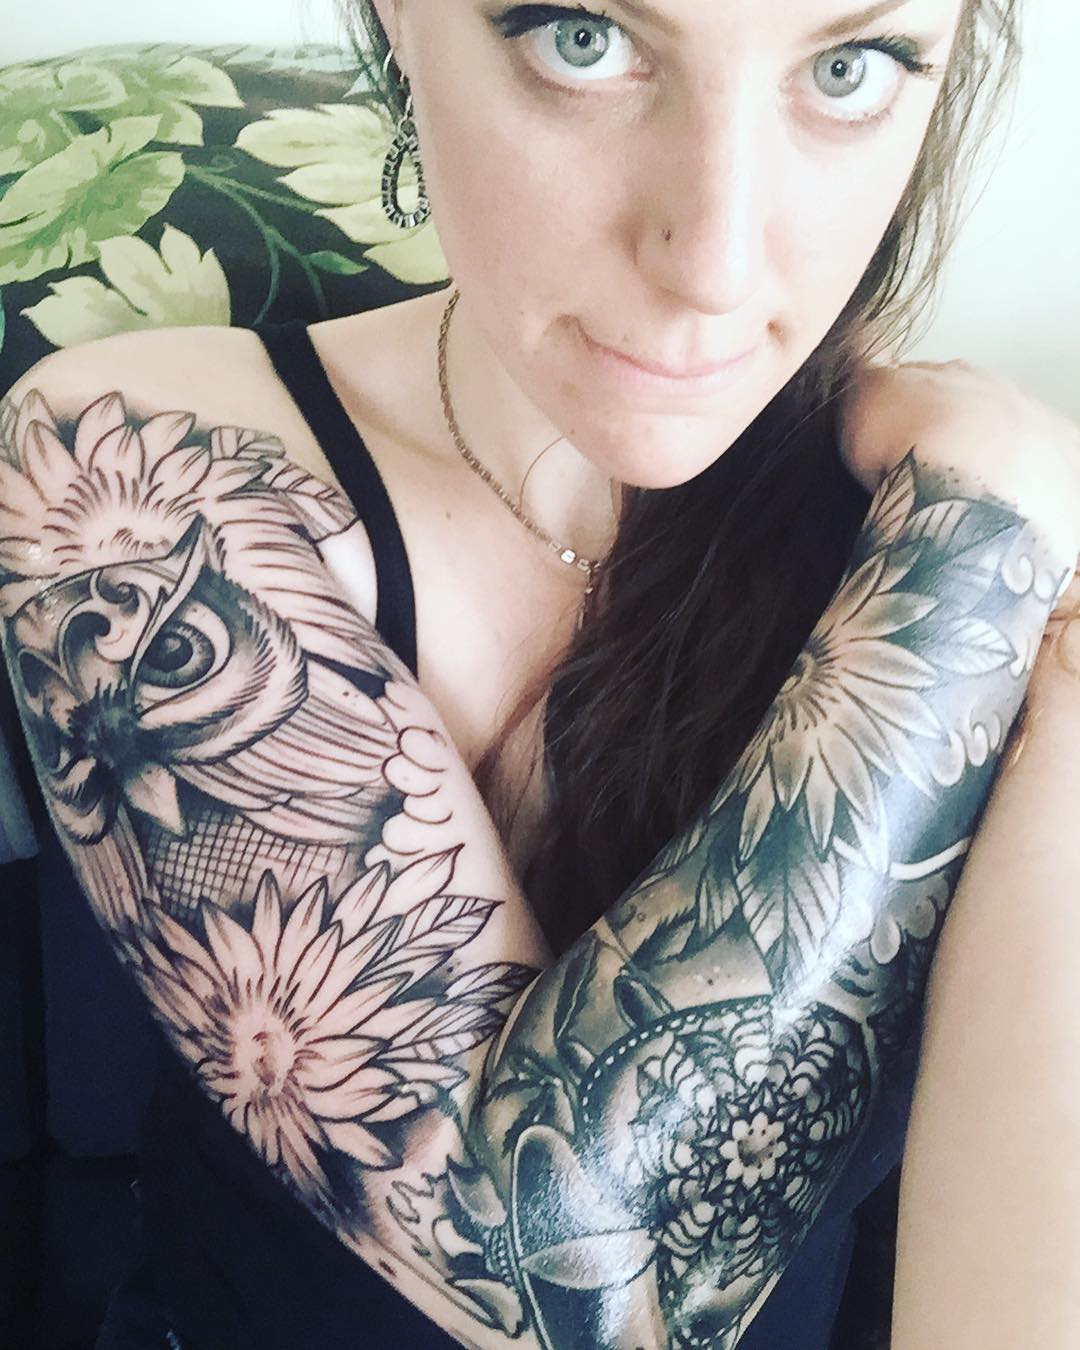 Tattoo Woman Photo: 45 Artistically Express Yourself Through Full Sleeve